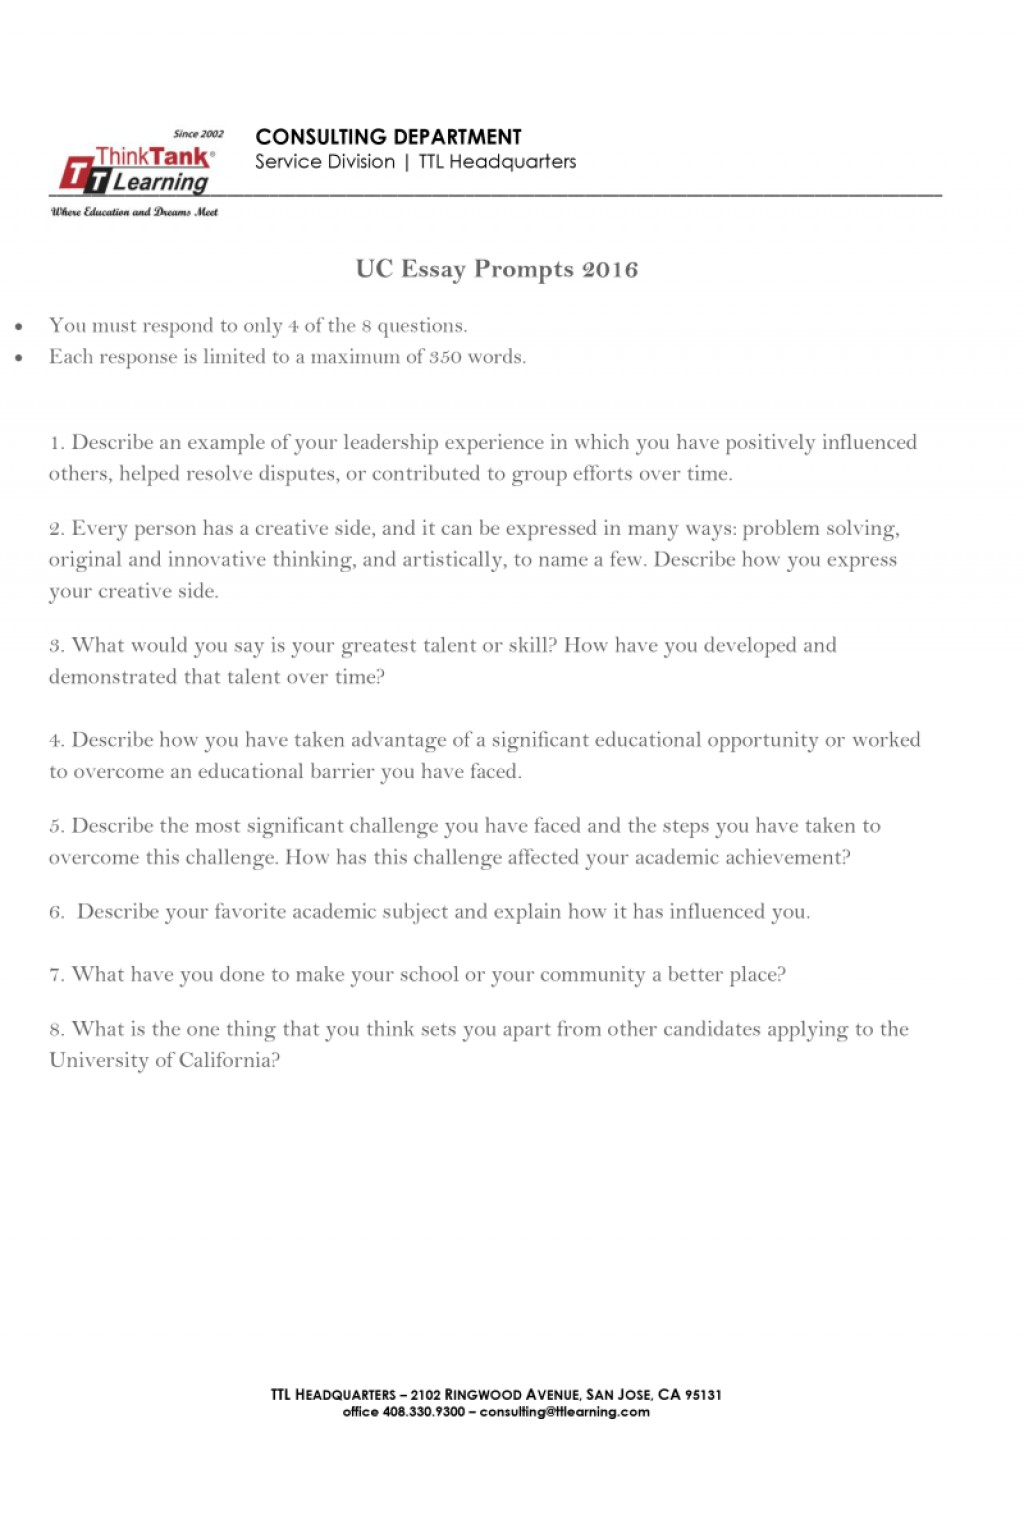 018 Apply Texas Essay Examples Example Prompts Poemsrom Co Uc College App 2 Application Berkeley Unusual Topic A C 2017 Large